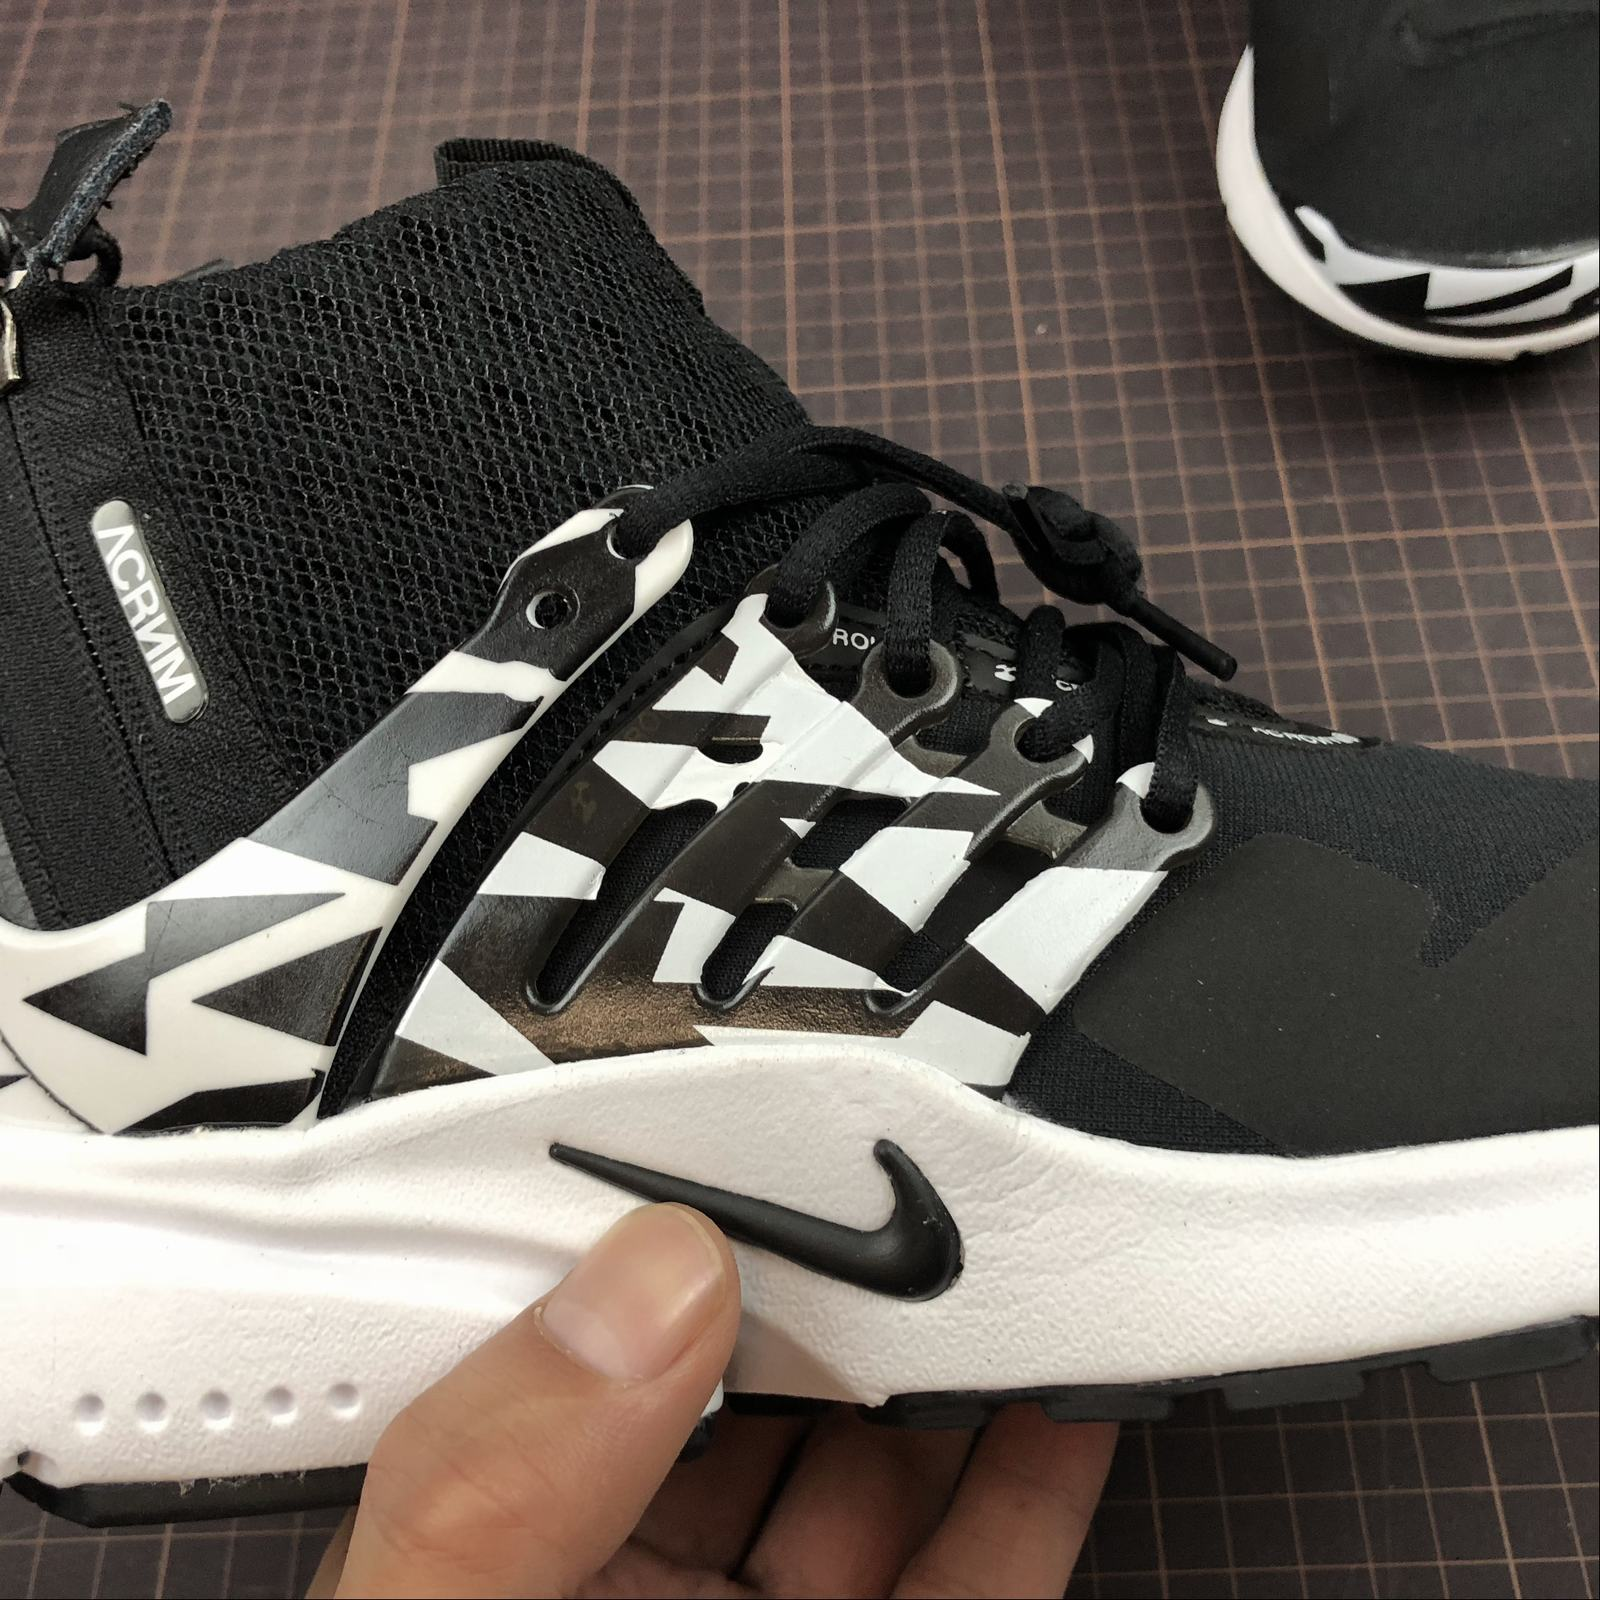 Мужские кроссовки Nike Air Presto Mid Acronym Men Black,White,Black - фото №10